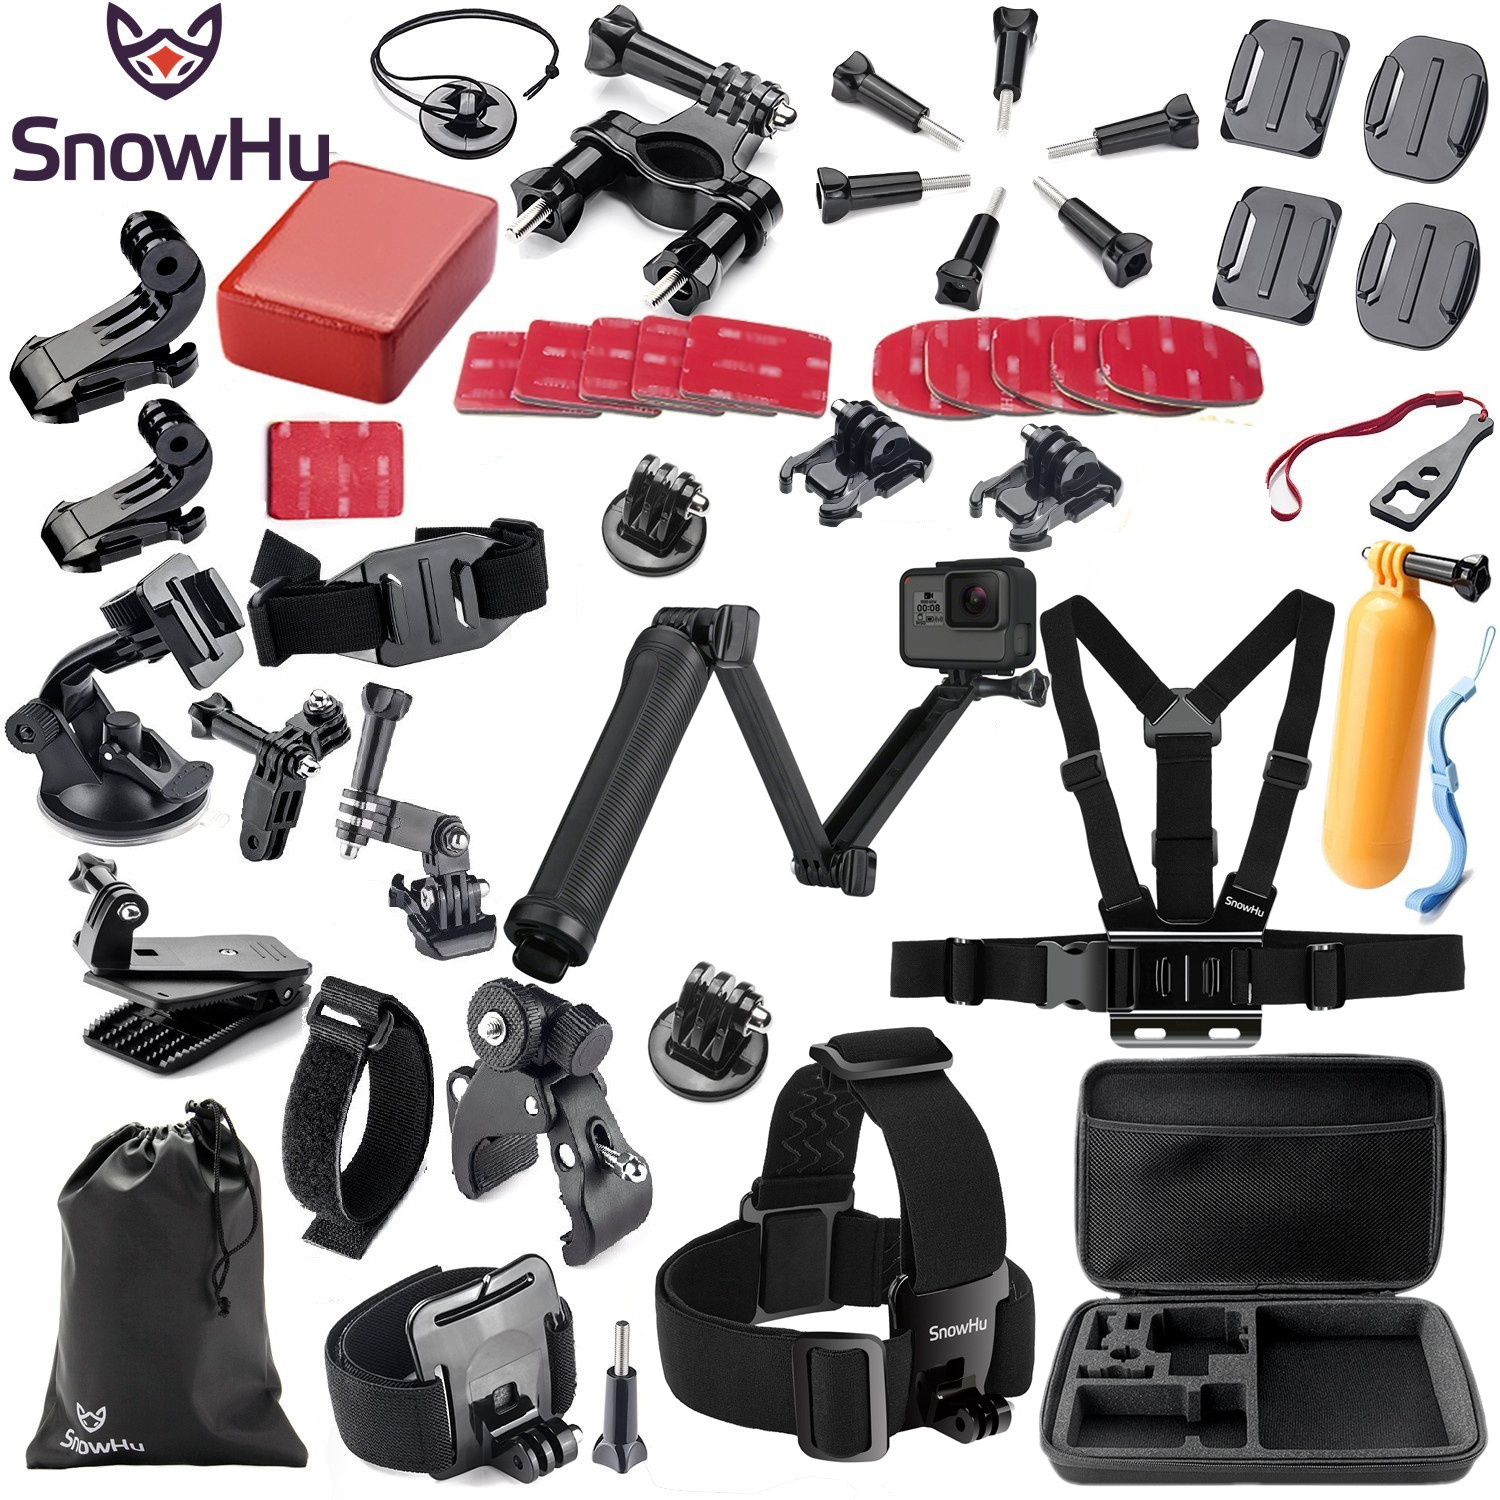 SnowHu for Gopro Accessories set for go pro hero 7 6 5 4 3 kit 3 cara selfie stick for Eken h8r / for xiaomi for yi EVA GS02